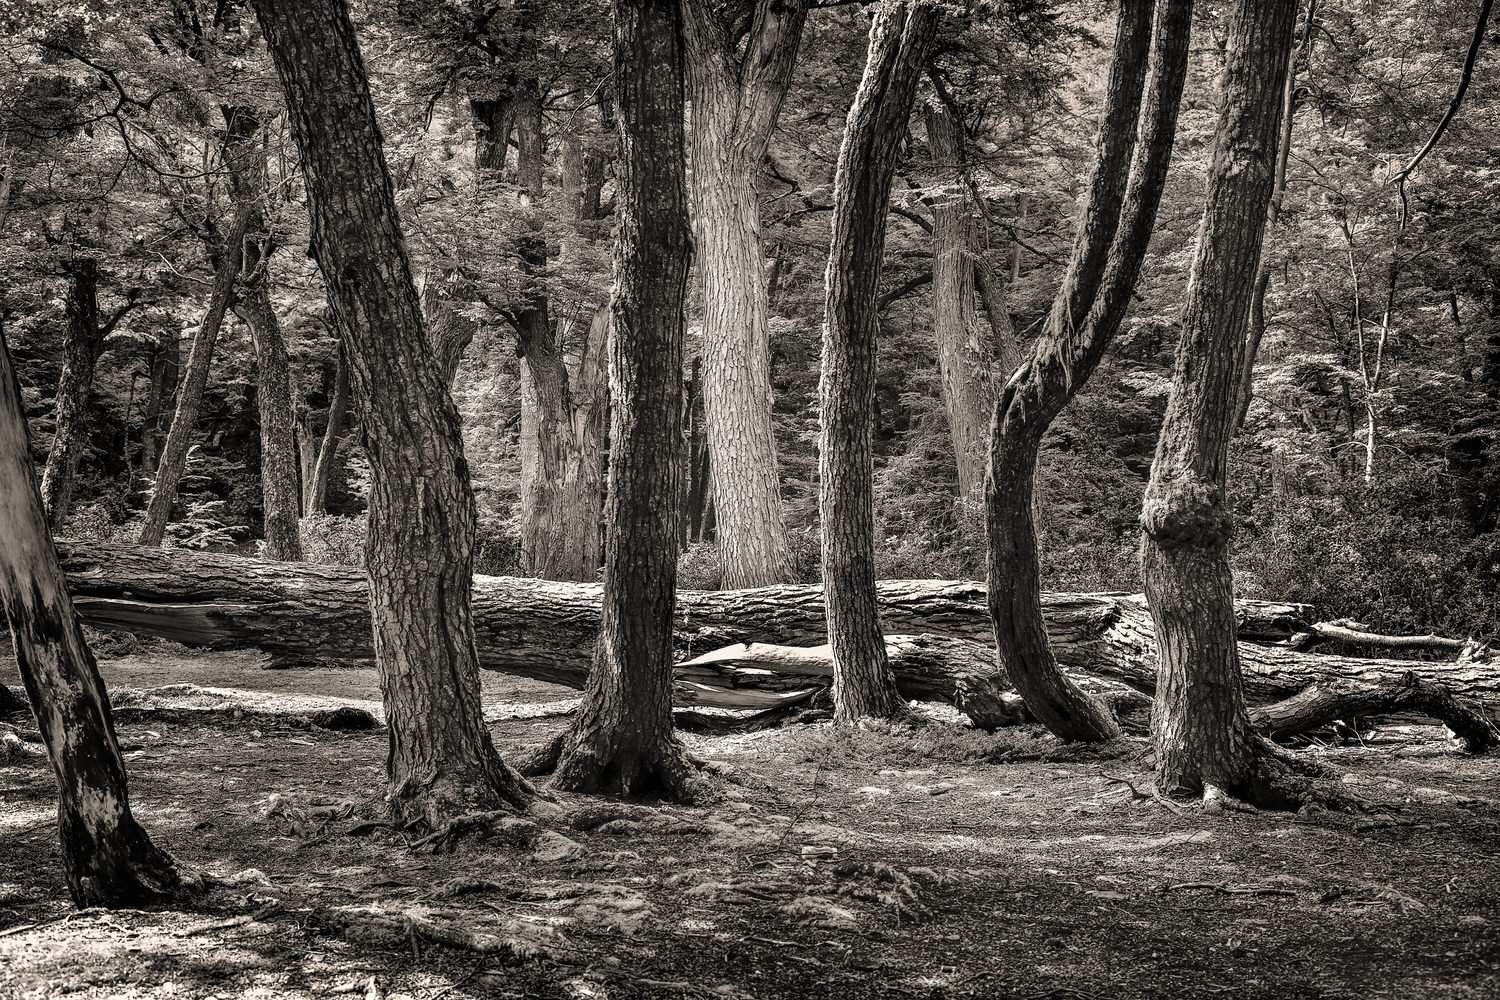 A stand of    trees in a forest    near the shores of the sea in the    Tierra del Fuego National Park   , Argentina.